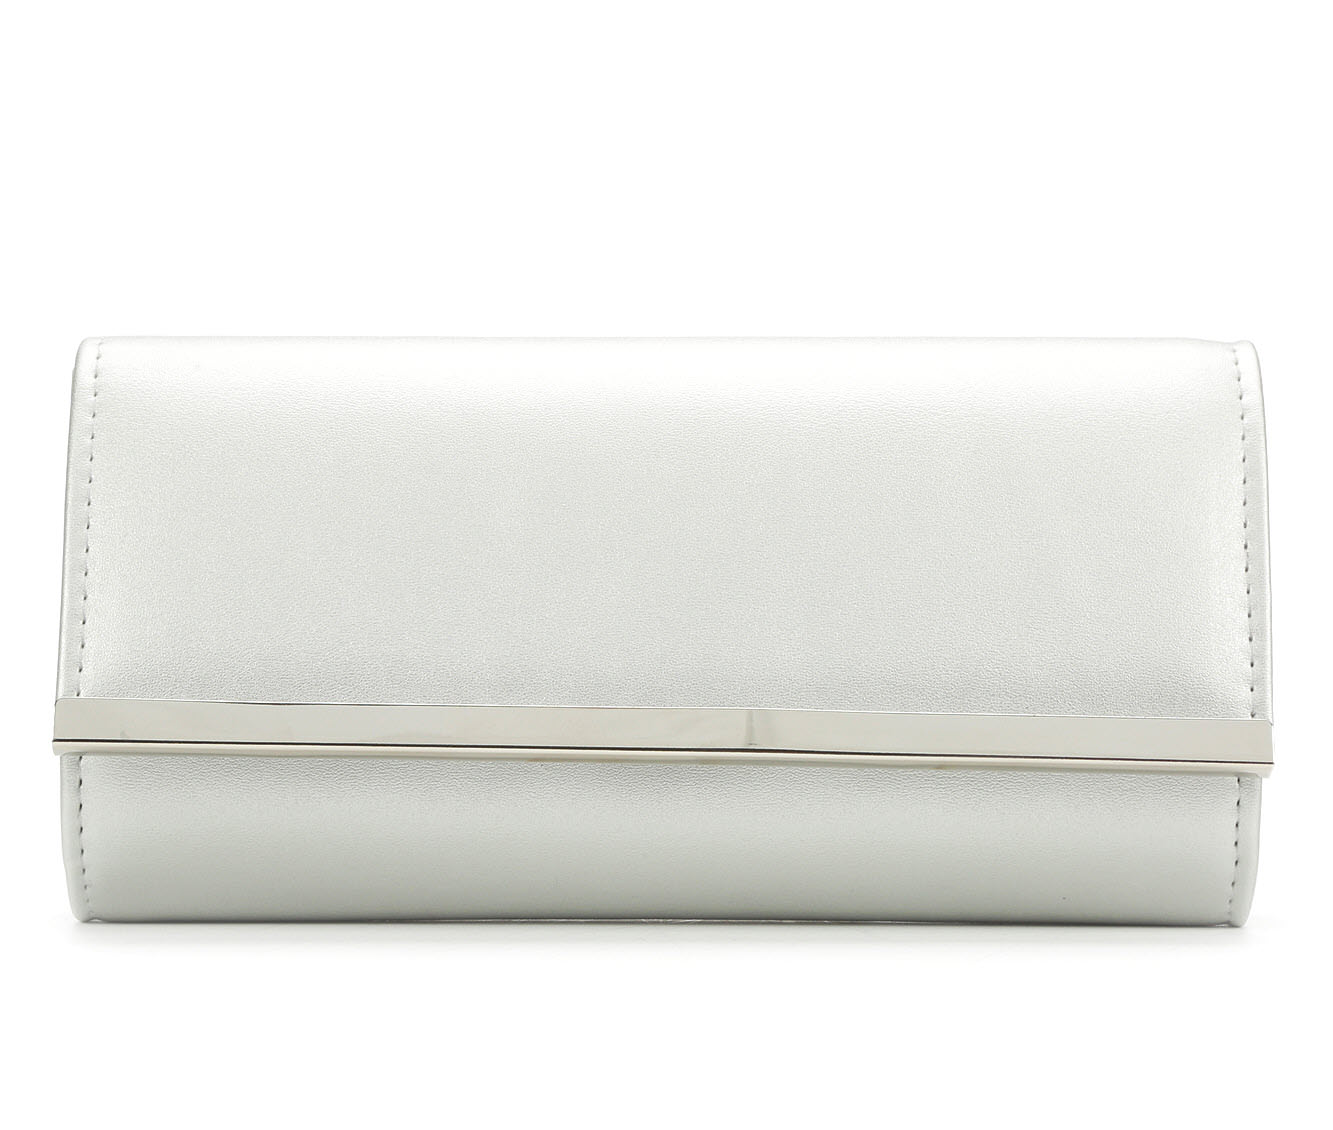 Four Seasons Handbags Faux Leather Evening Clutch (Silver)